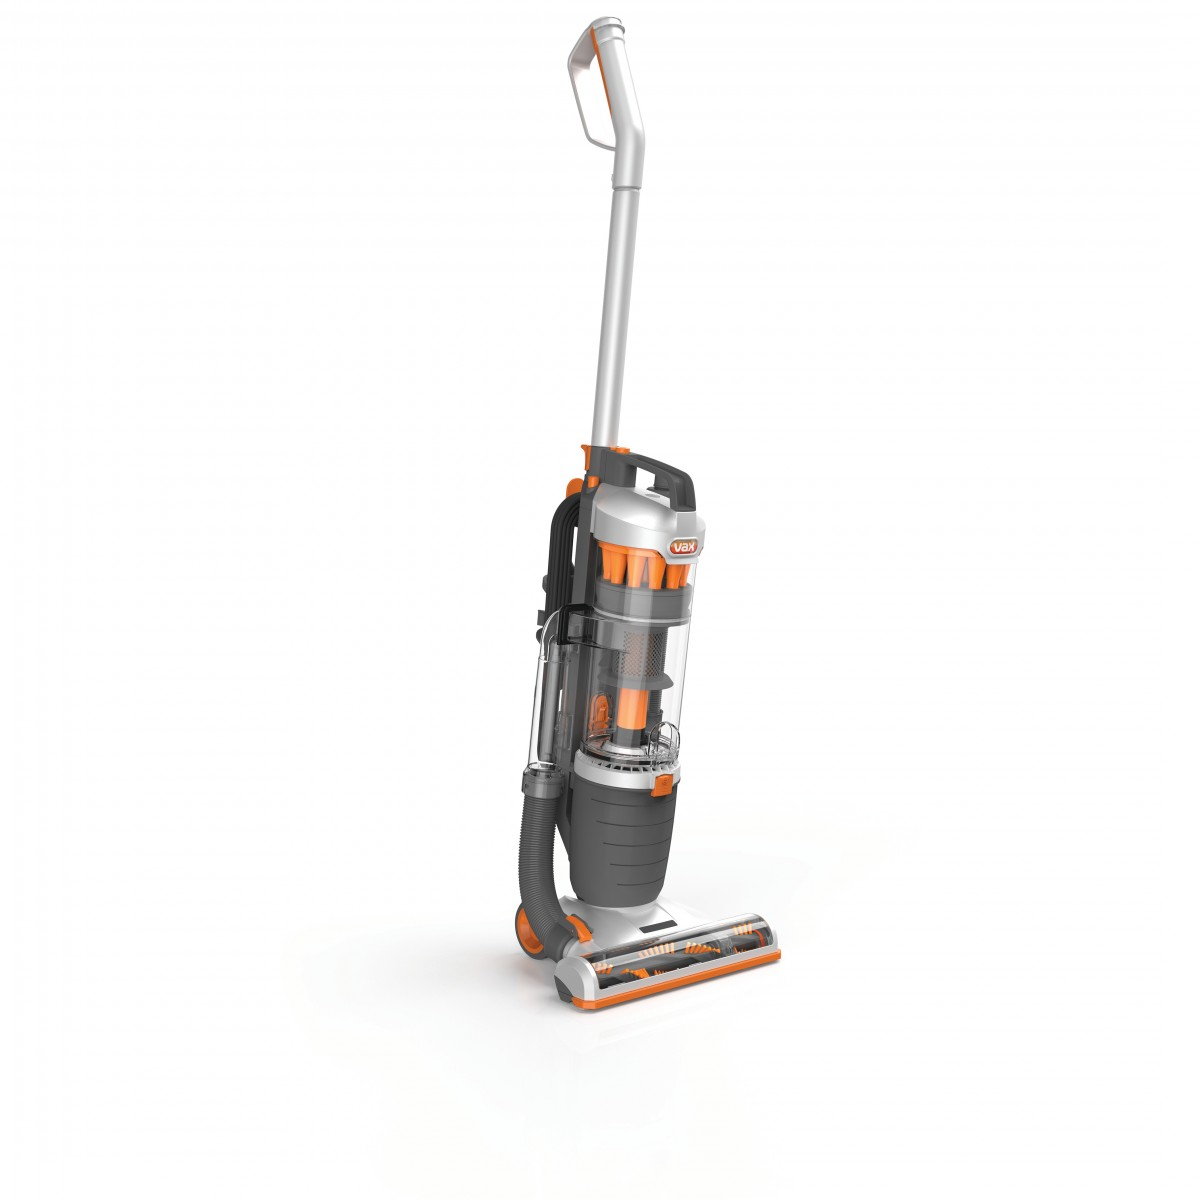 Air 3 Compact Upright Vacuum Cleaner Vax Au